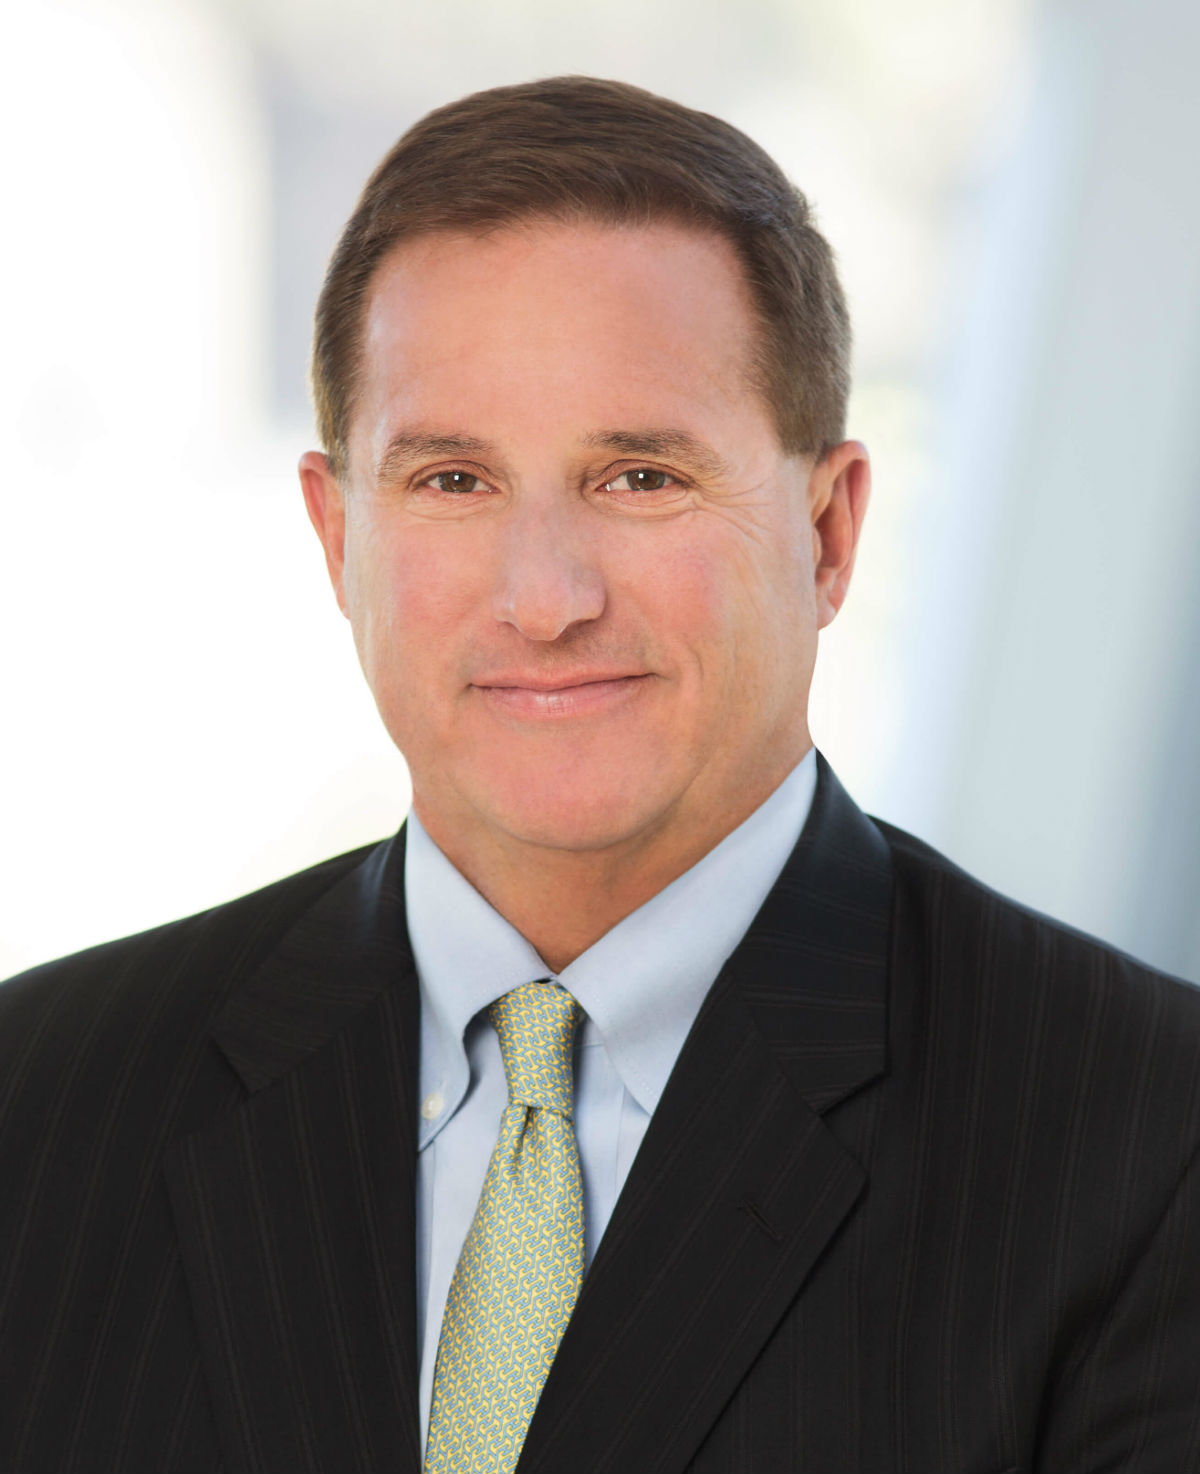 OCPC-Executive-Mark Hurd-150618.jpg